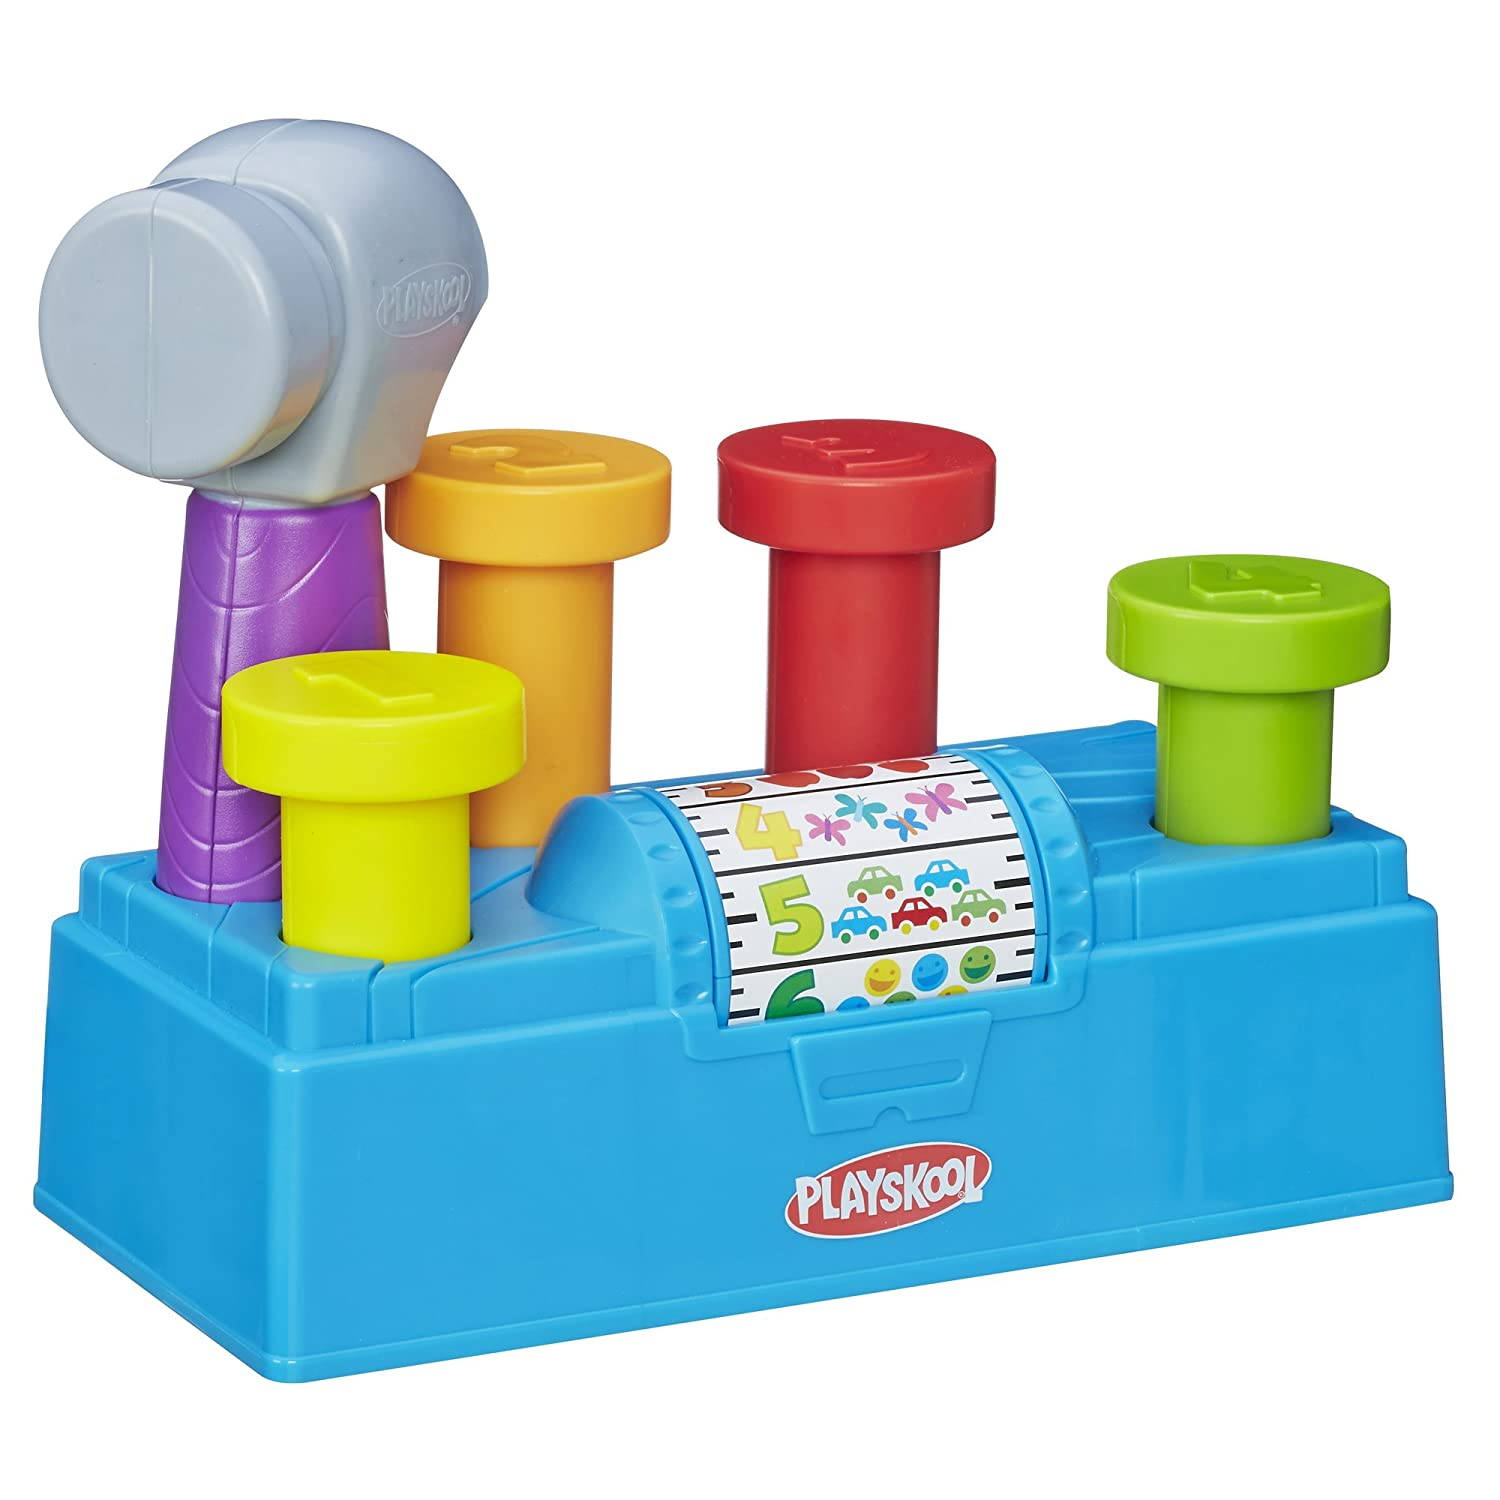 Playskool Tap n Spin Toolbench